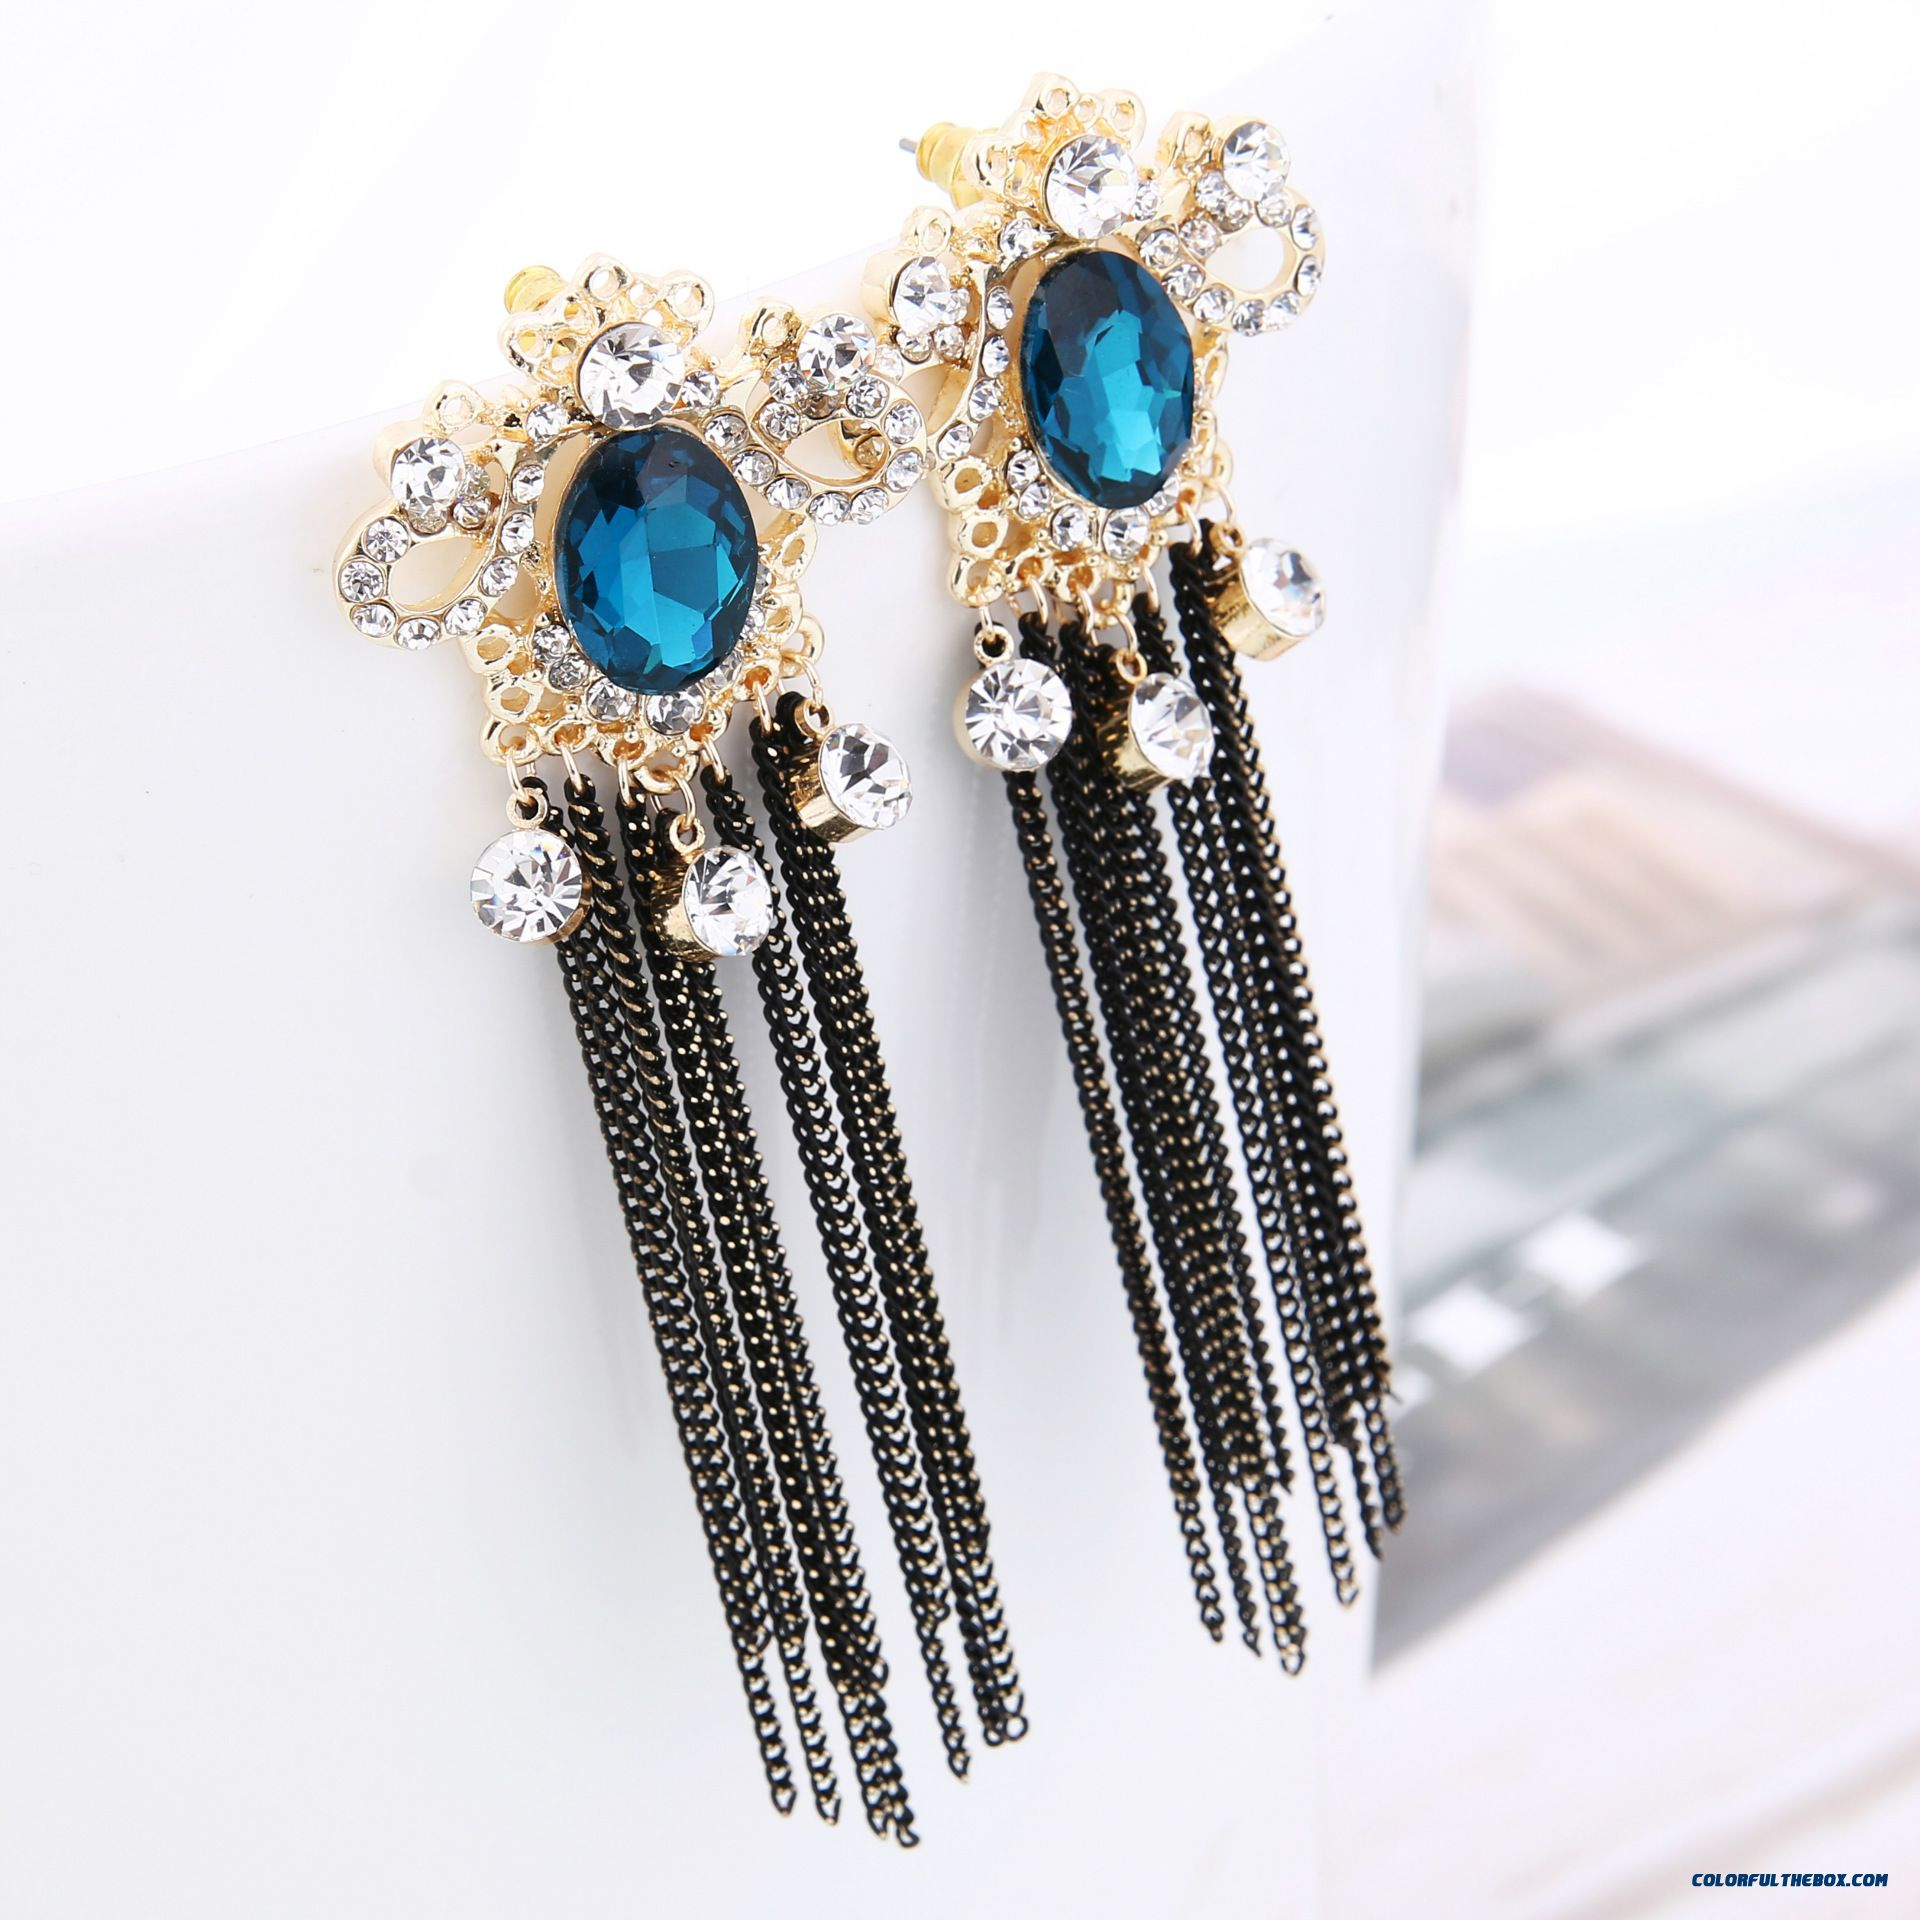 Europe And America Exaggerated Crown Chain Tassel Stud Earrings Hypoallergenic Earrings Women Jewelry - more images 2